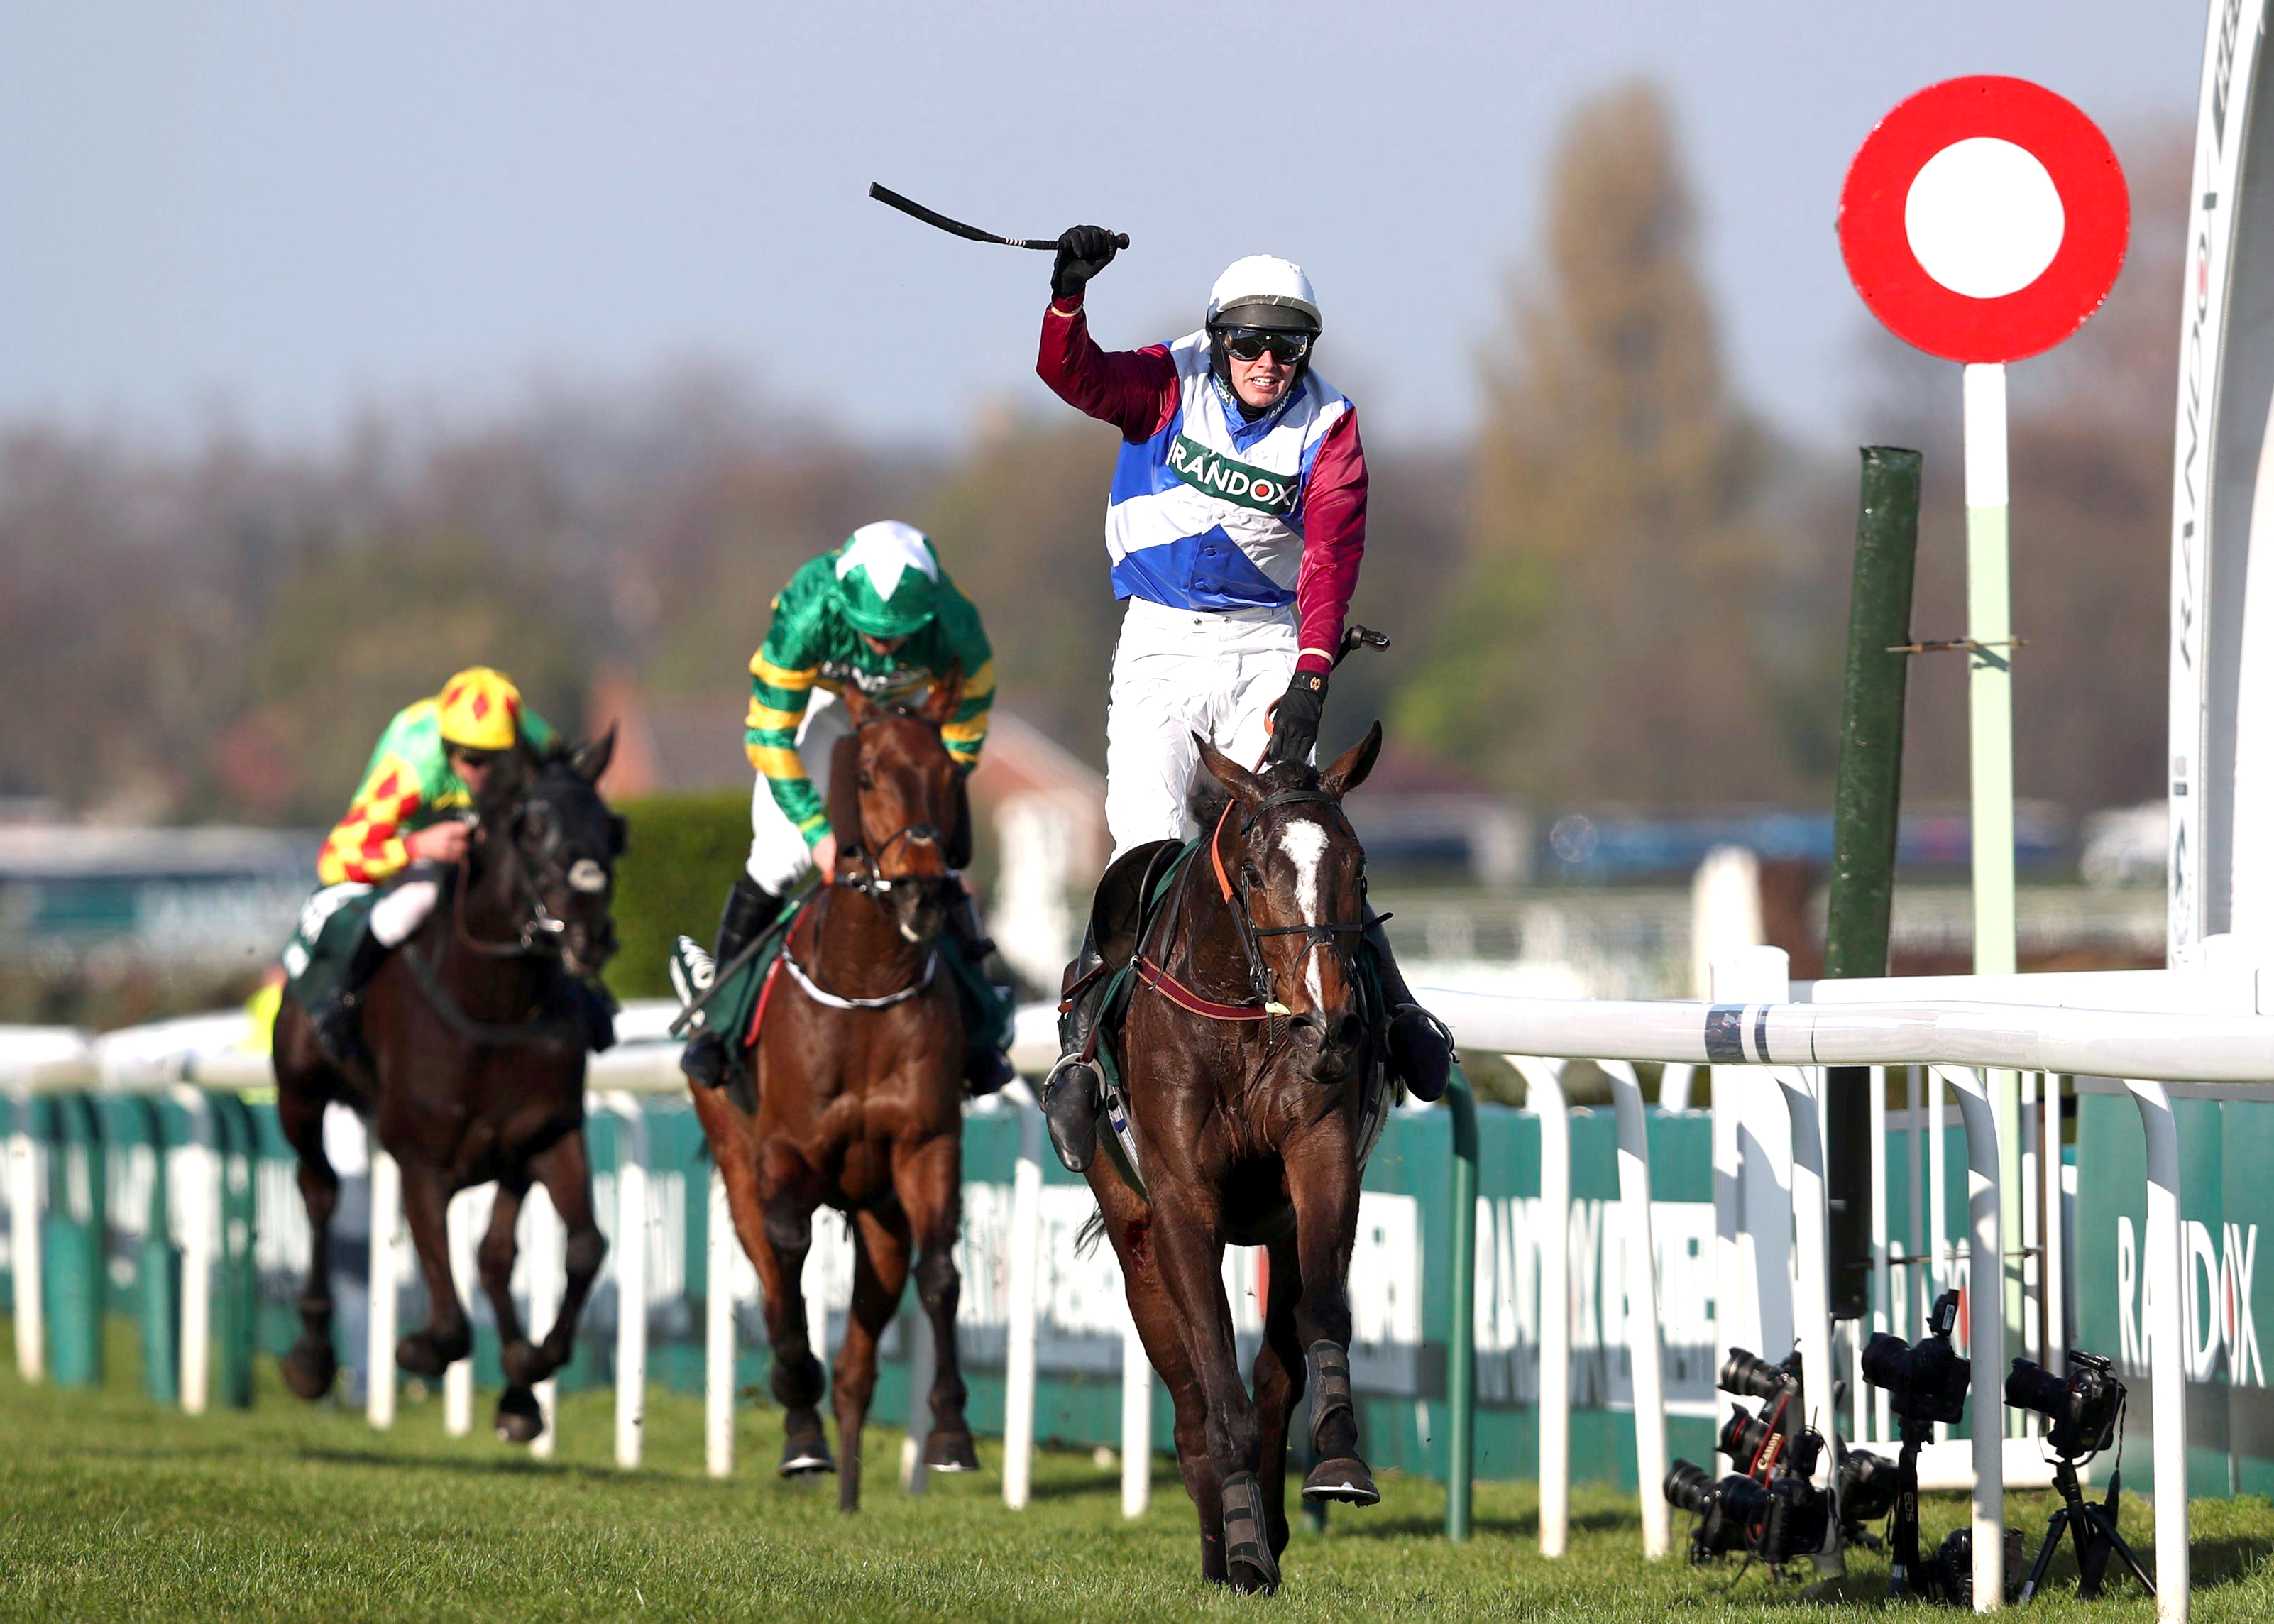 One For Arthur ridden by Derek Fox crosses the line to win the Grand National horse race on at Aintree Racecourse in Liverpool, Saturday April 8. (David Davies/PA via AP)